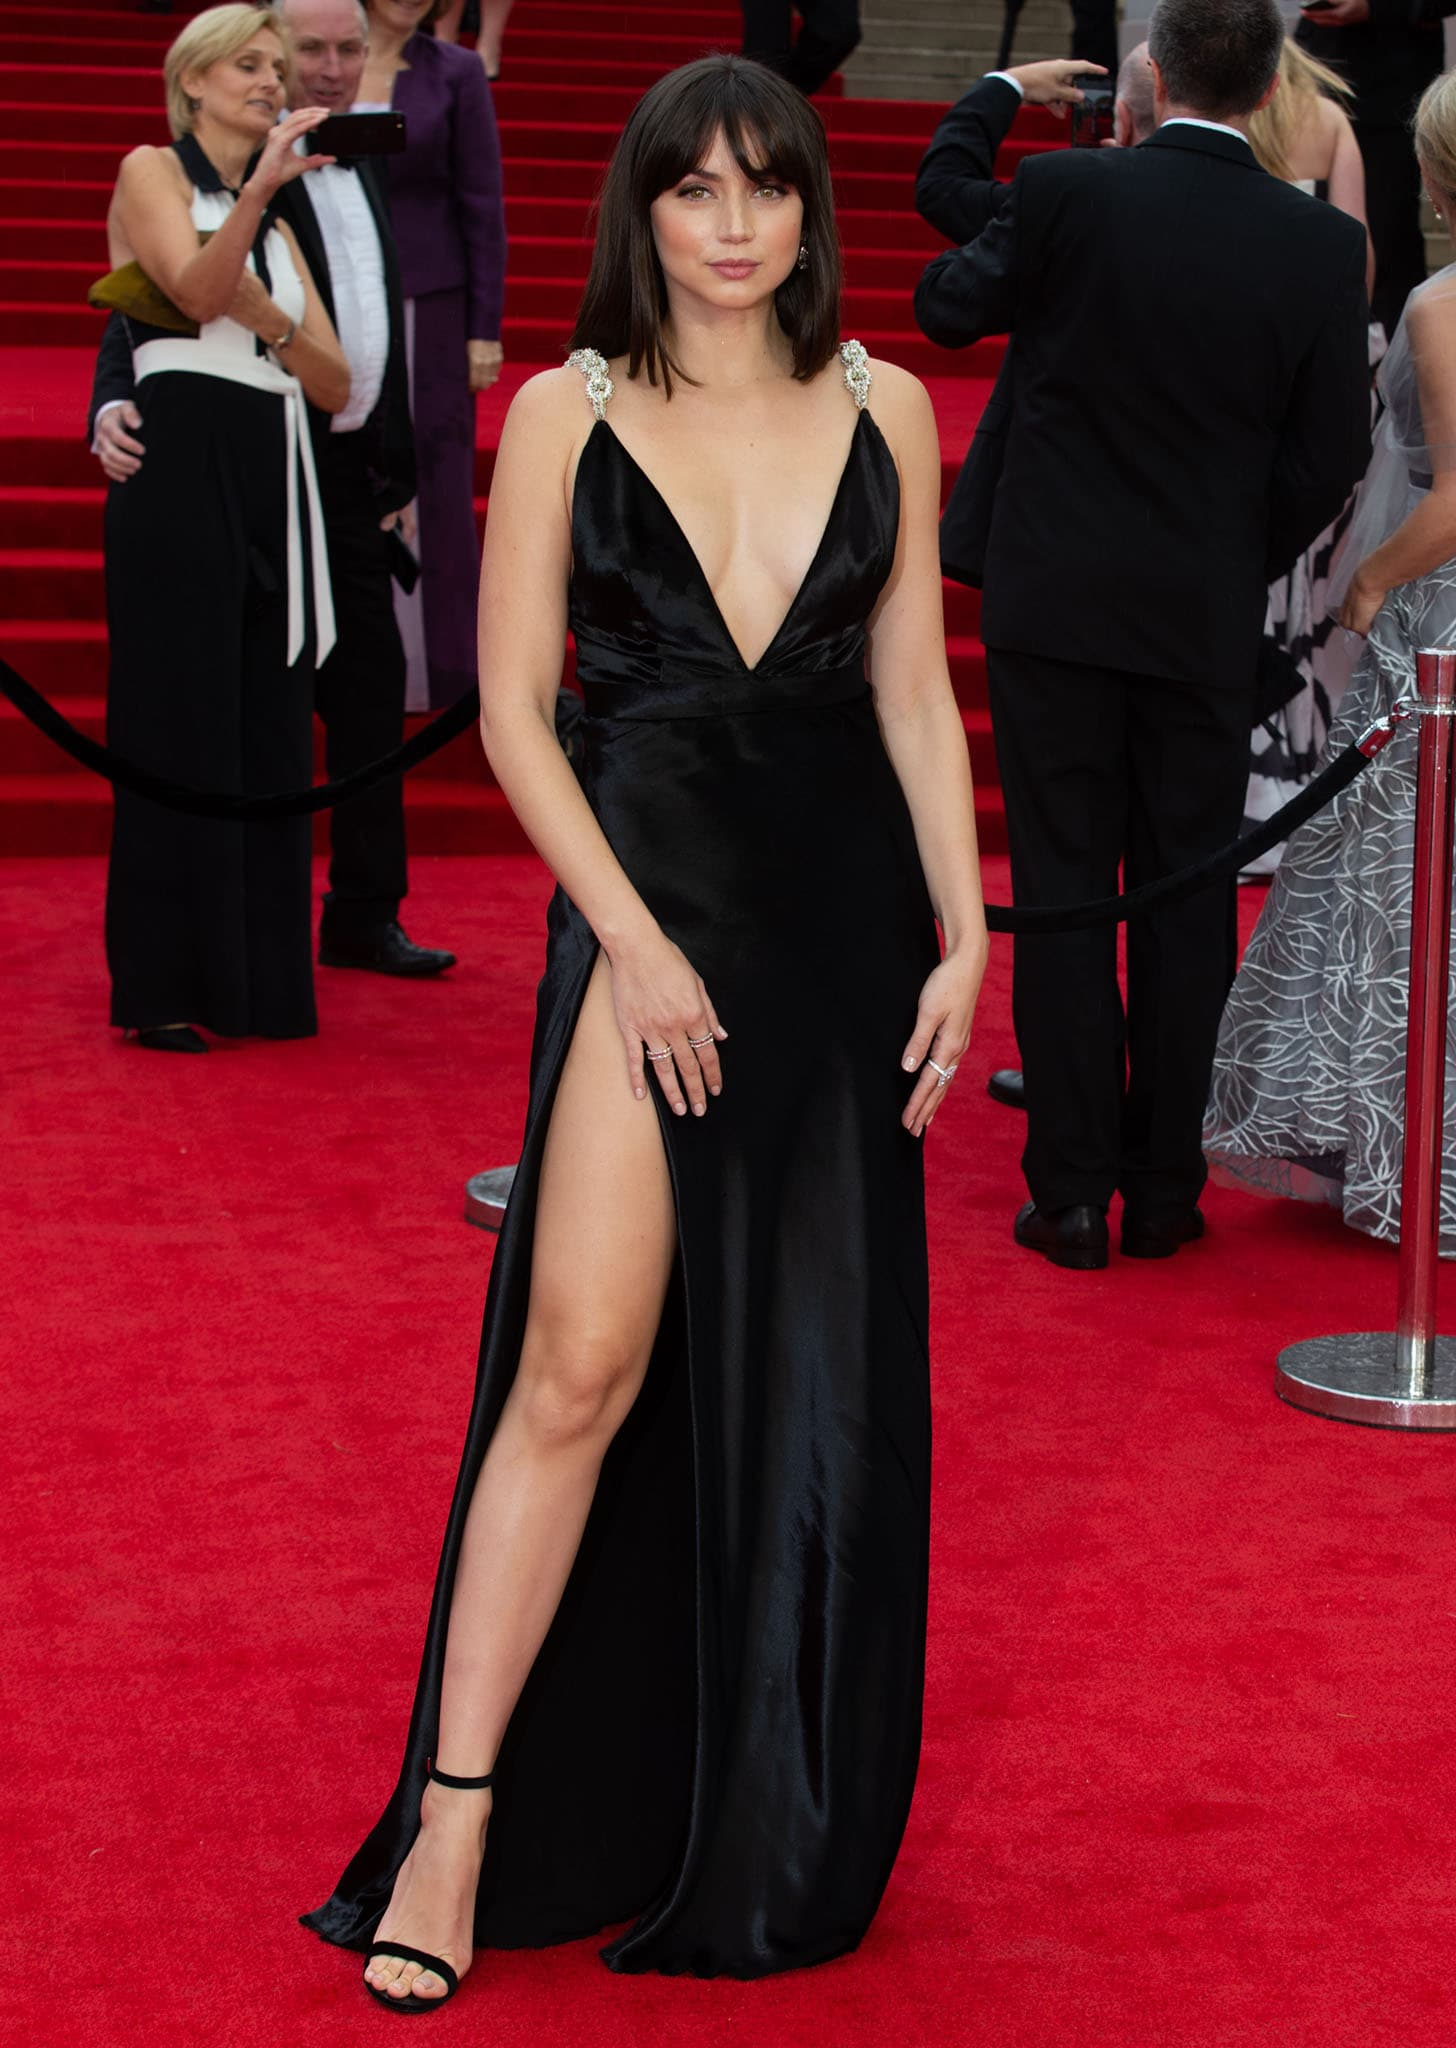 Ana de Armas at the world premiere of No Time to Die held at the Royal Albert Hall in London on September 28, 2021